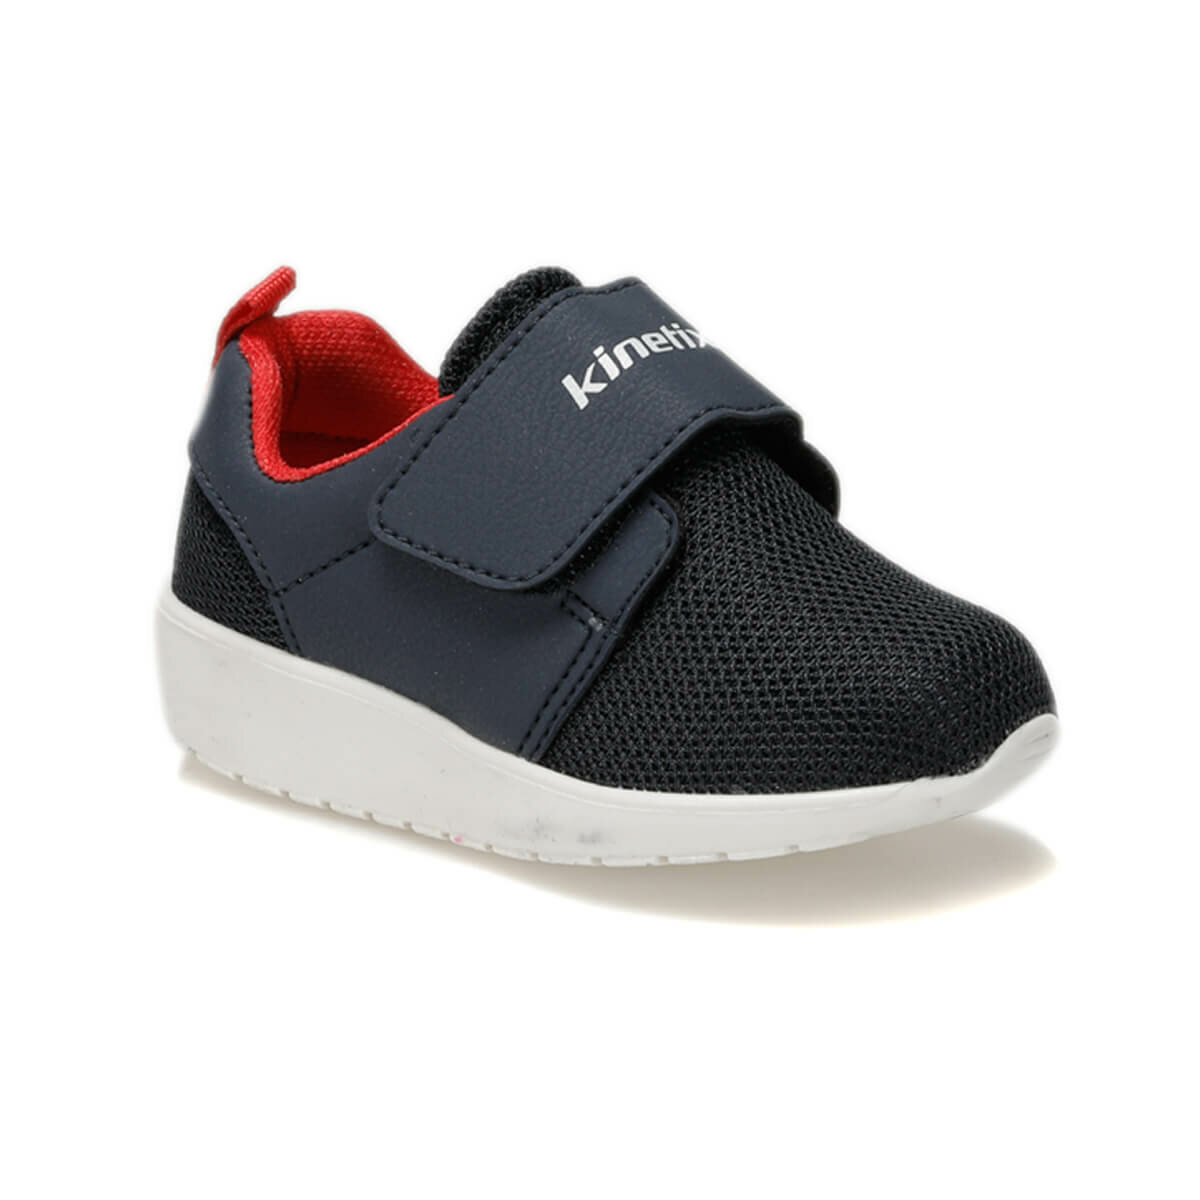 FLO Navy Blue Child Sneaker Shoes Sports Shoes New Fashionable Breathable Leisure Sports Running Shoes For Girls Boys Brand Kids Shoes KINETIX PAPUN